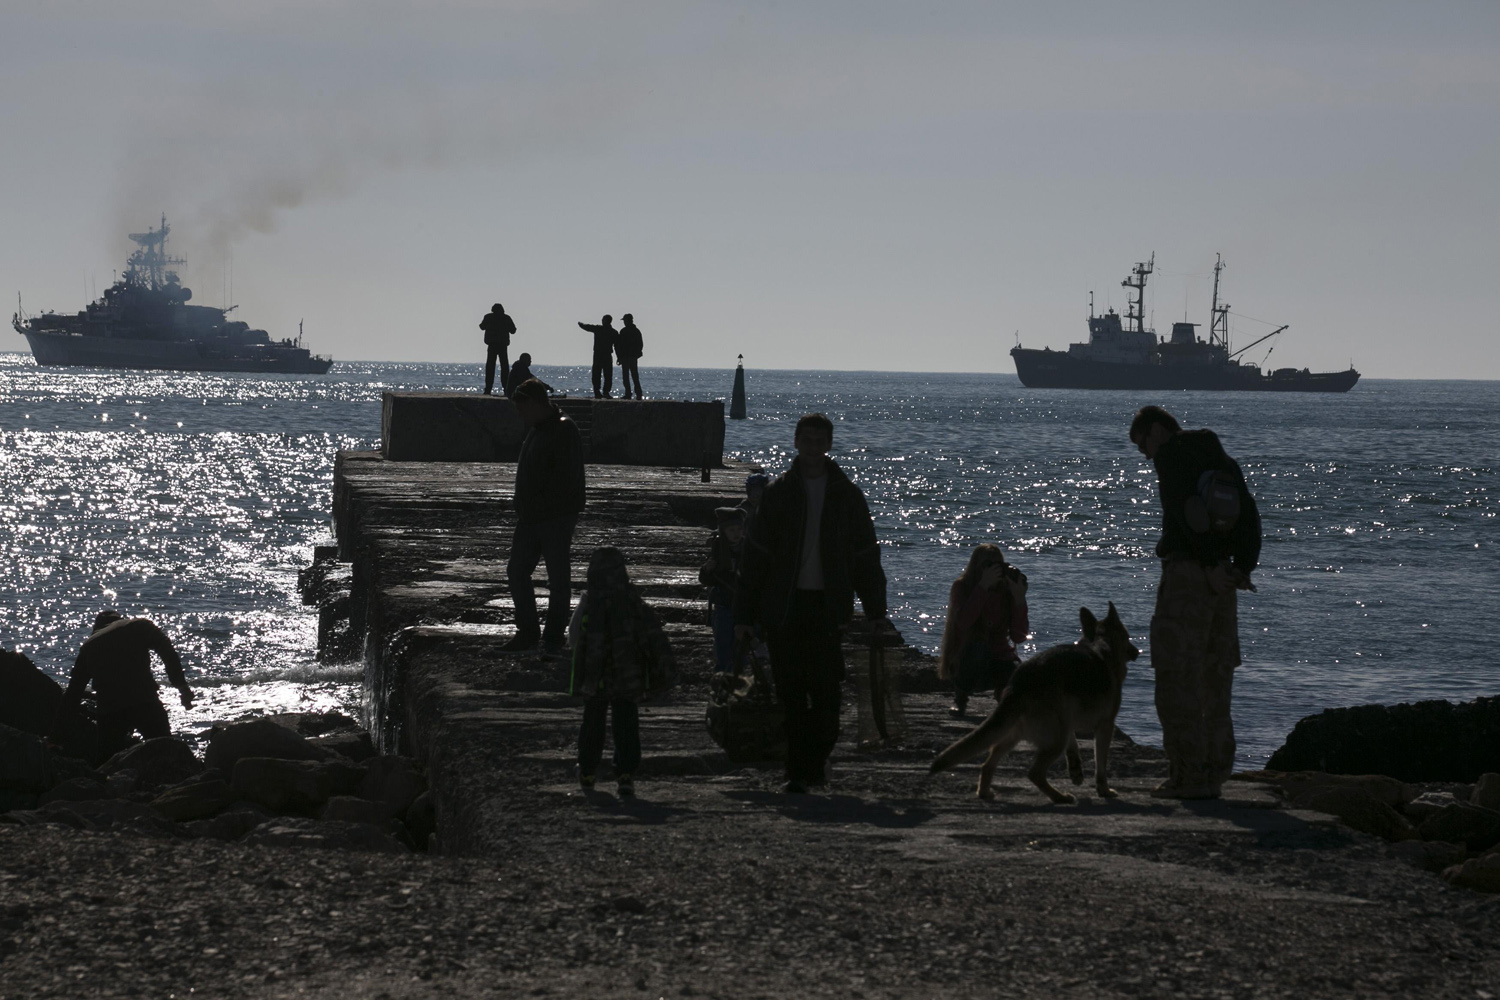 Mar. 23, 2014. People watch Russian ships blockading the exit of Donuzlav bay in Crimea, where three Ukrainian navy ships refused to surrender to Russian forces.